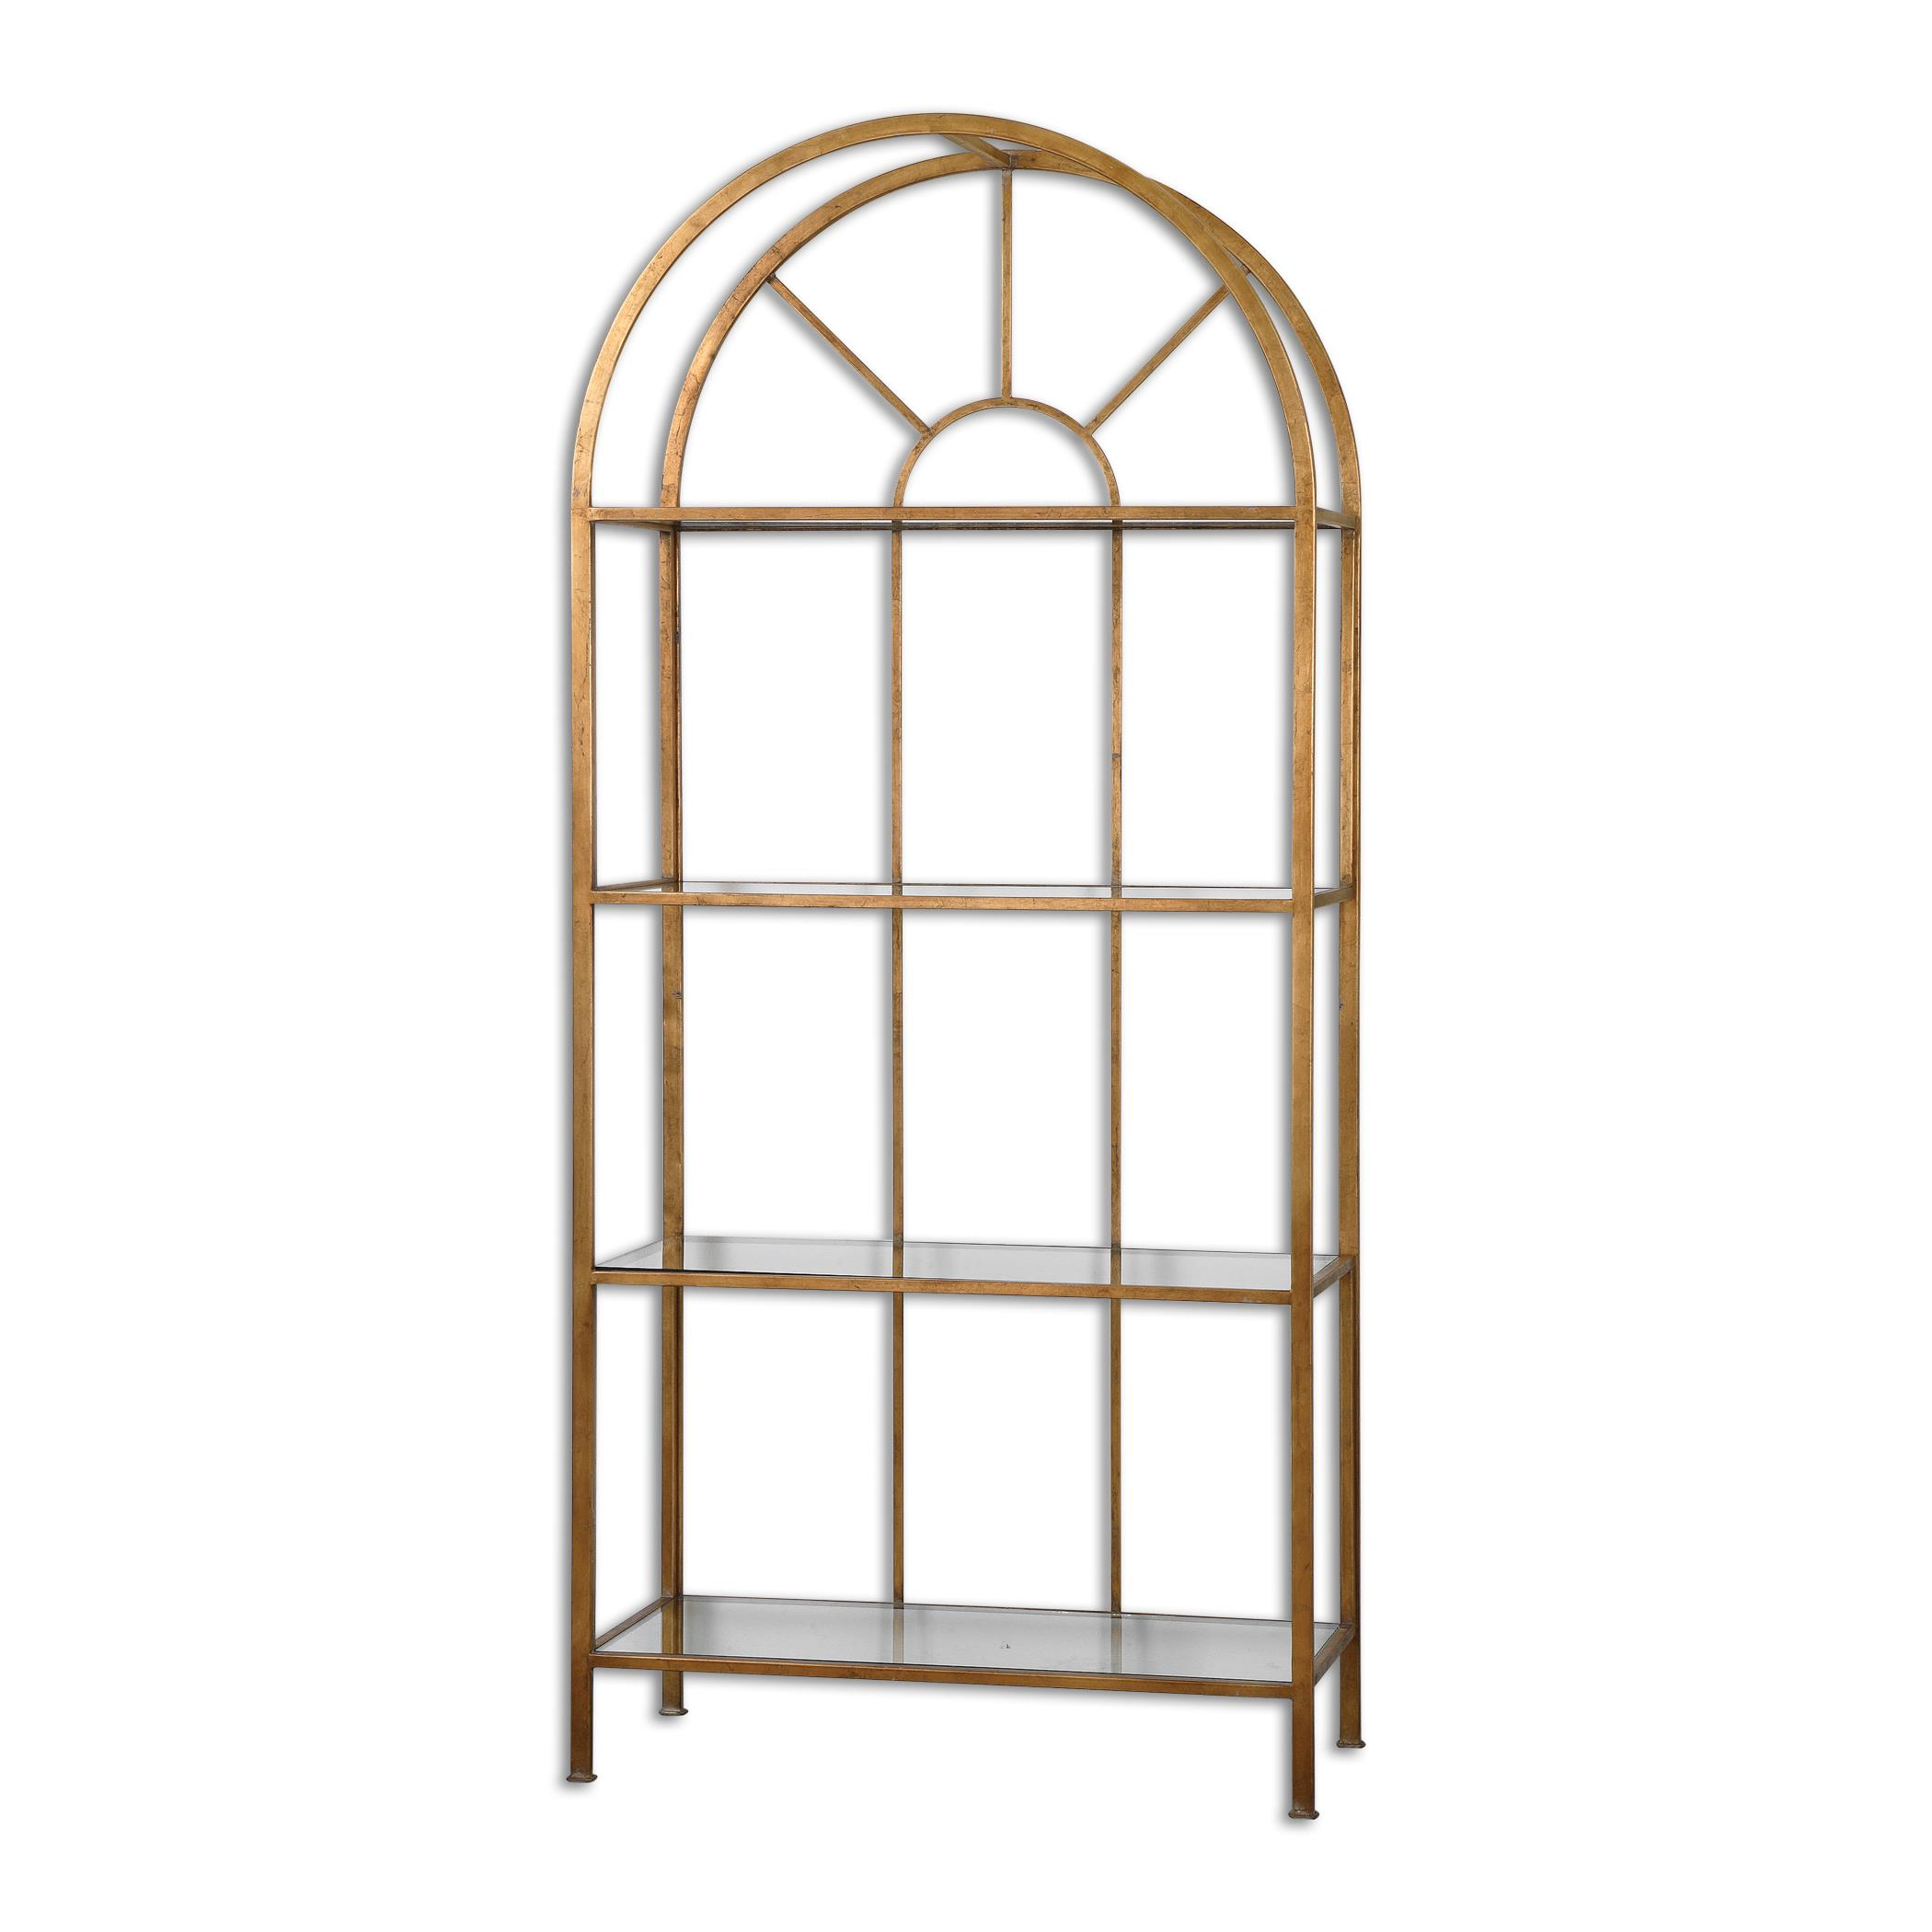 Uttermost Accent Furniture Cireneo Glass Etagere - Item Number: 24440